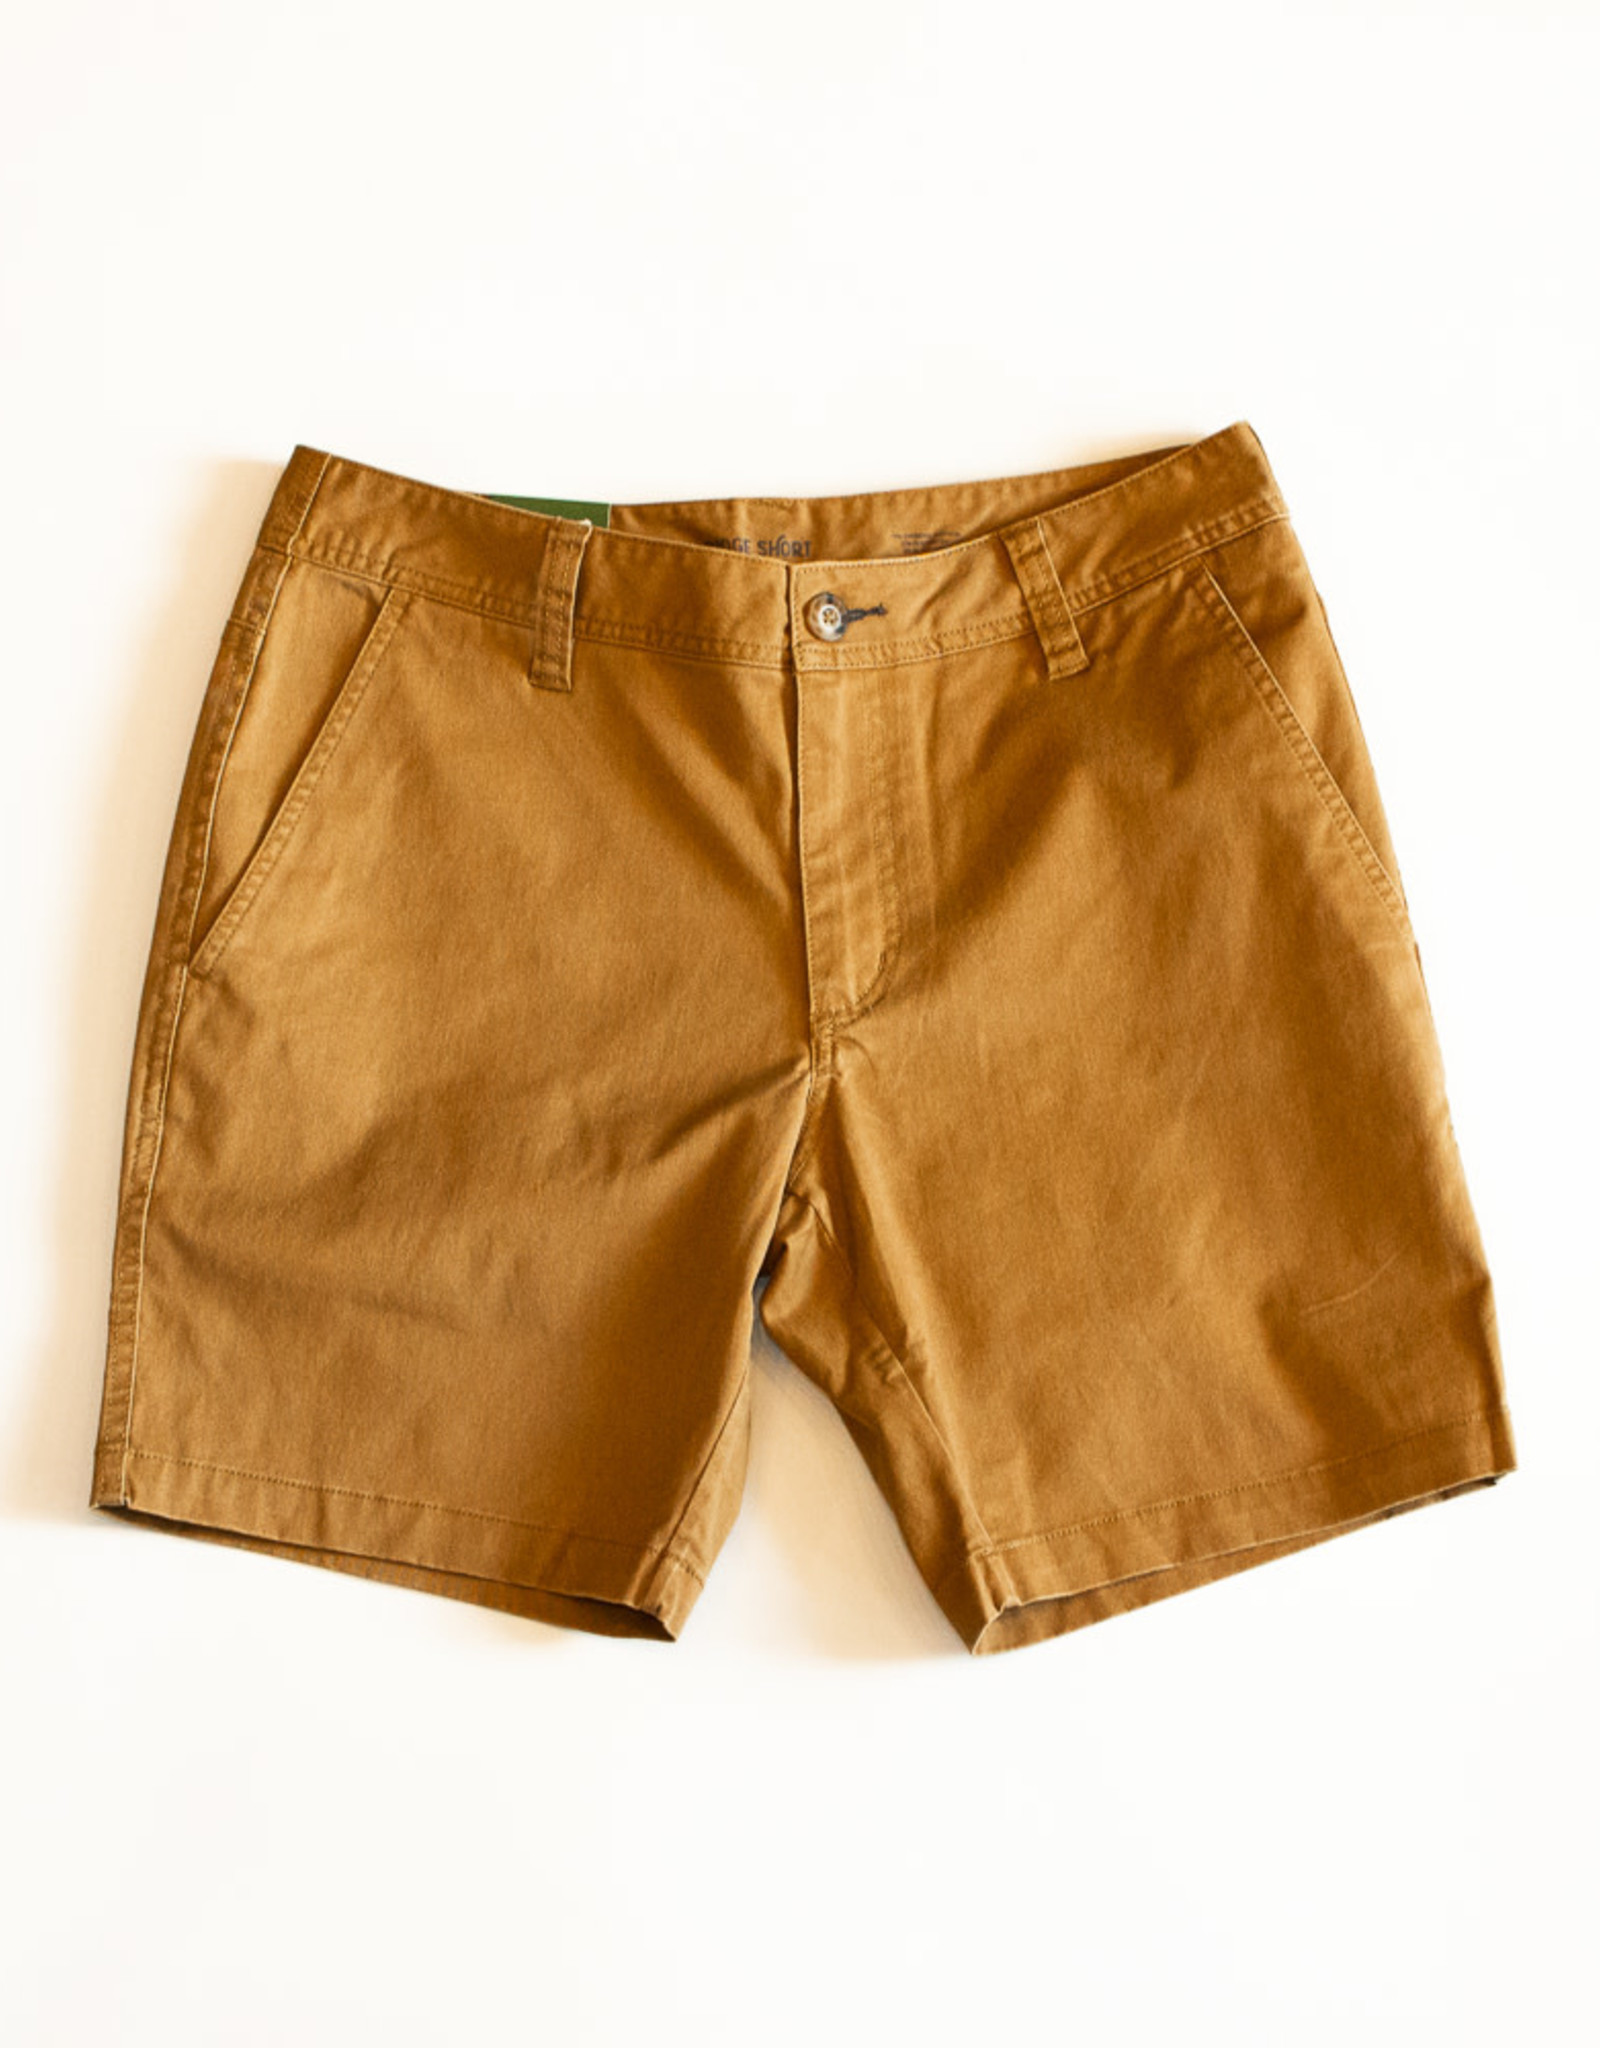 Toad & Co Mission Ridge Short